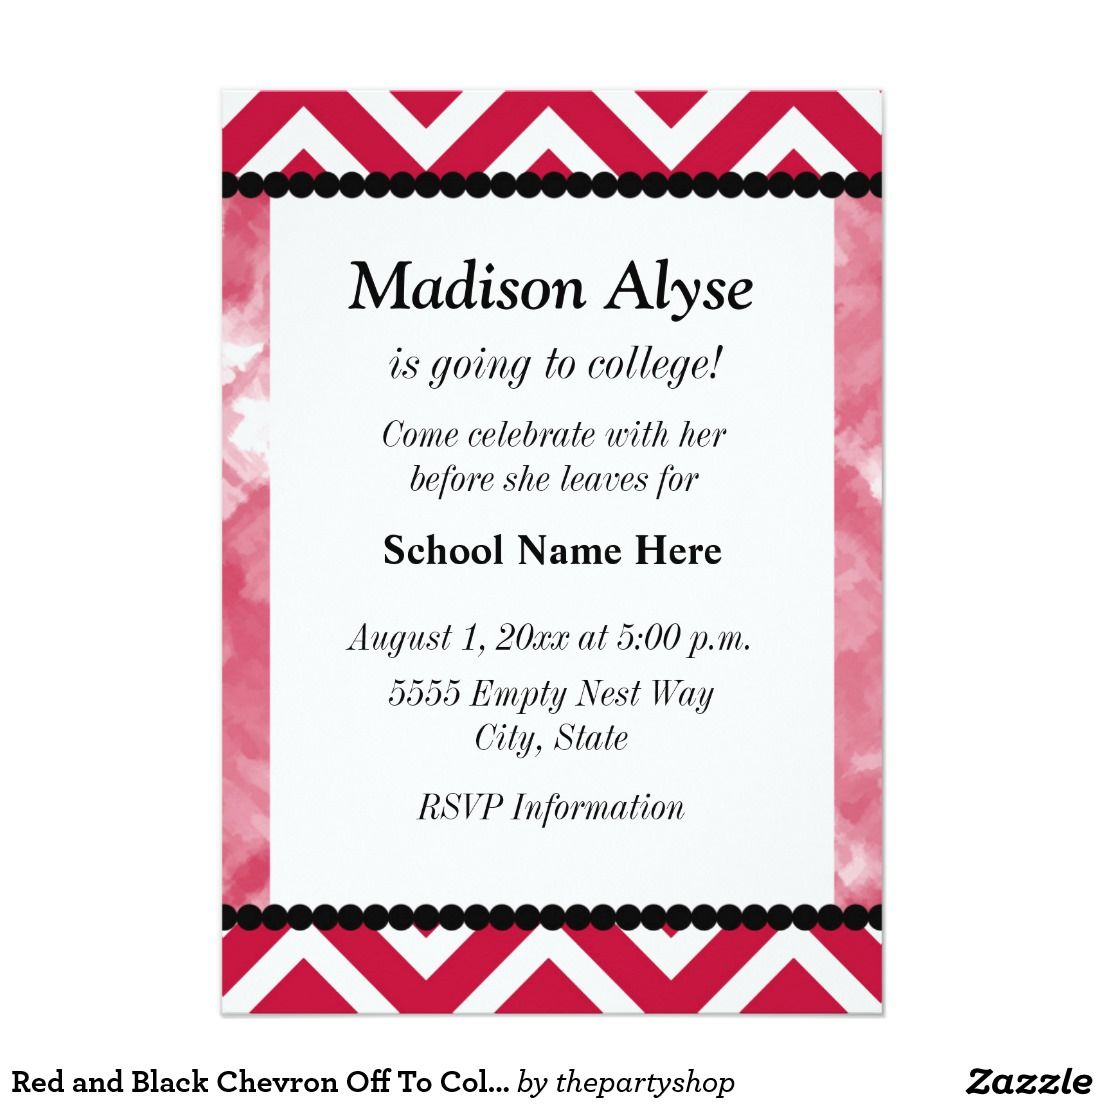 Red And Black Chevron Off To College Party Invite